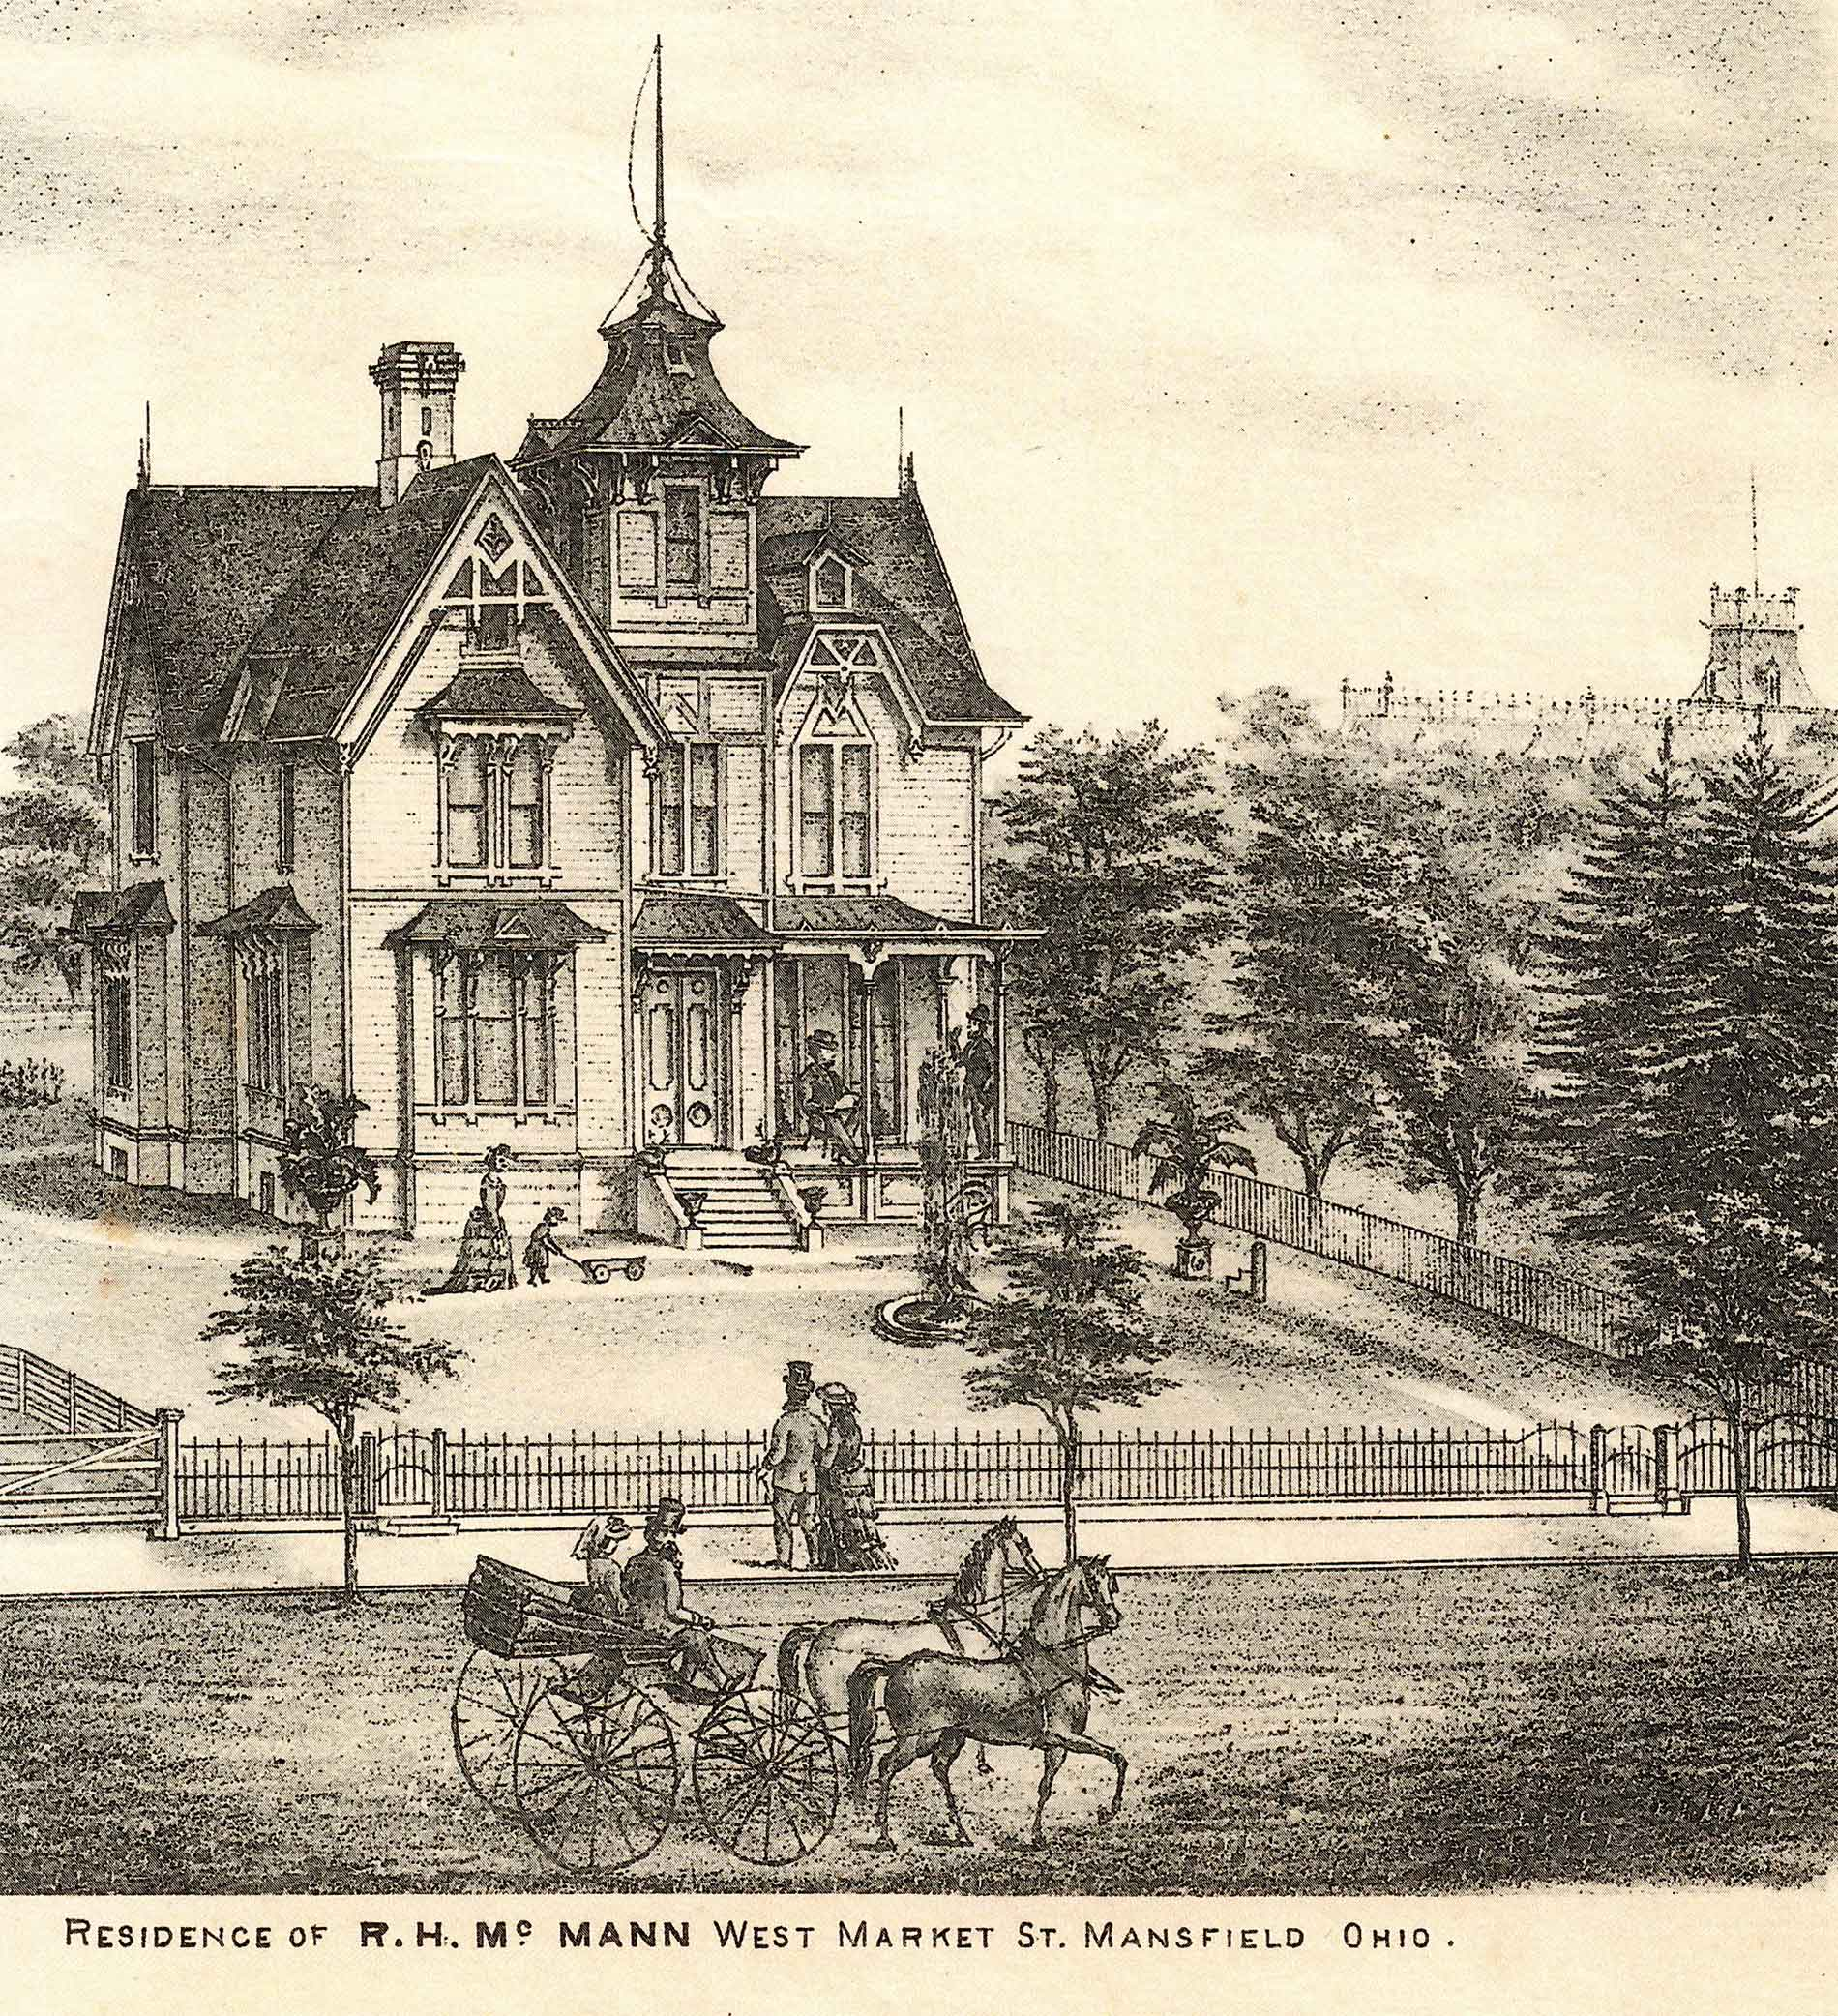 fig. 11 _ Vintage etching of R.H. McMann residence on West Market St.